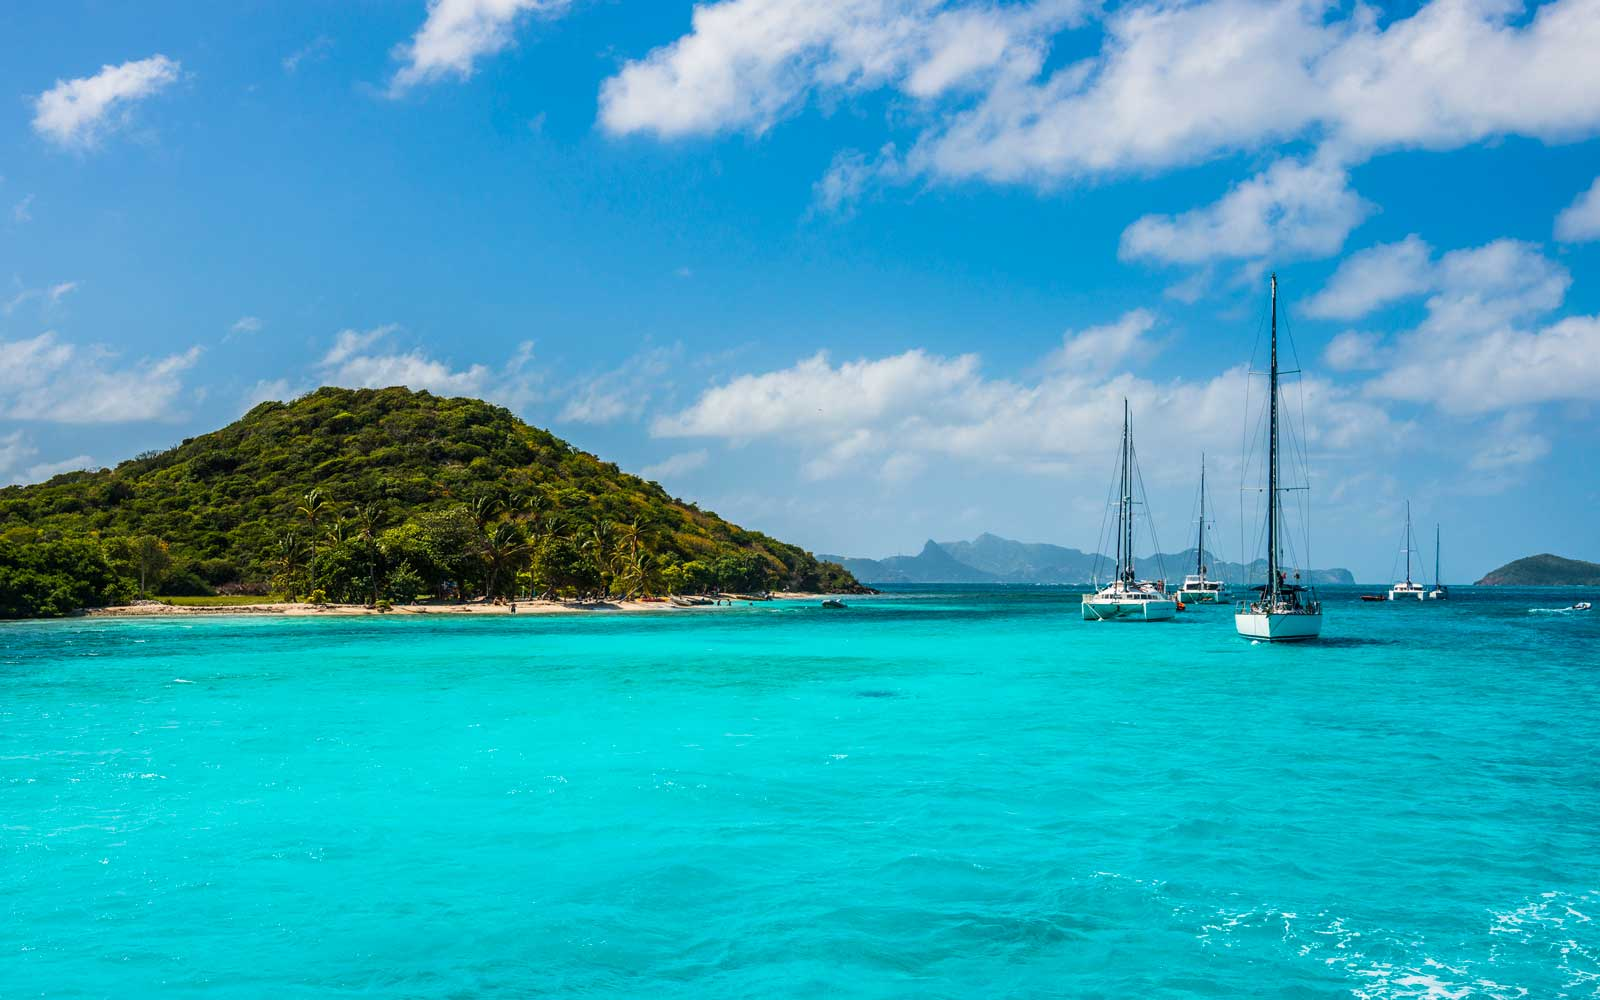 Sailing boats anchoring in the Tobago Cays, The Grenadines, St. Vincent and the Grenadines, Windward Islands, West Indies, Caribbean